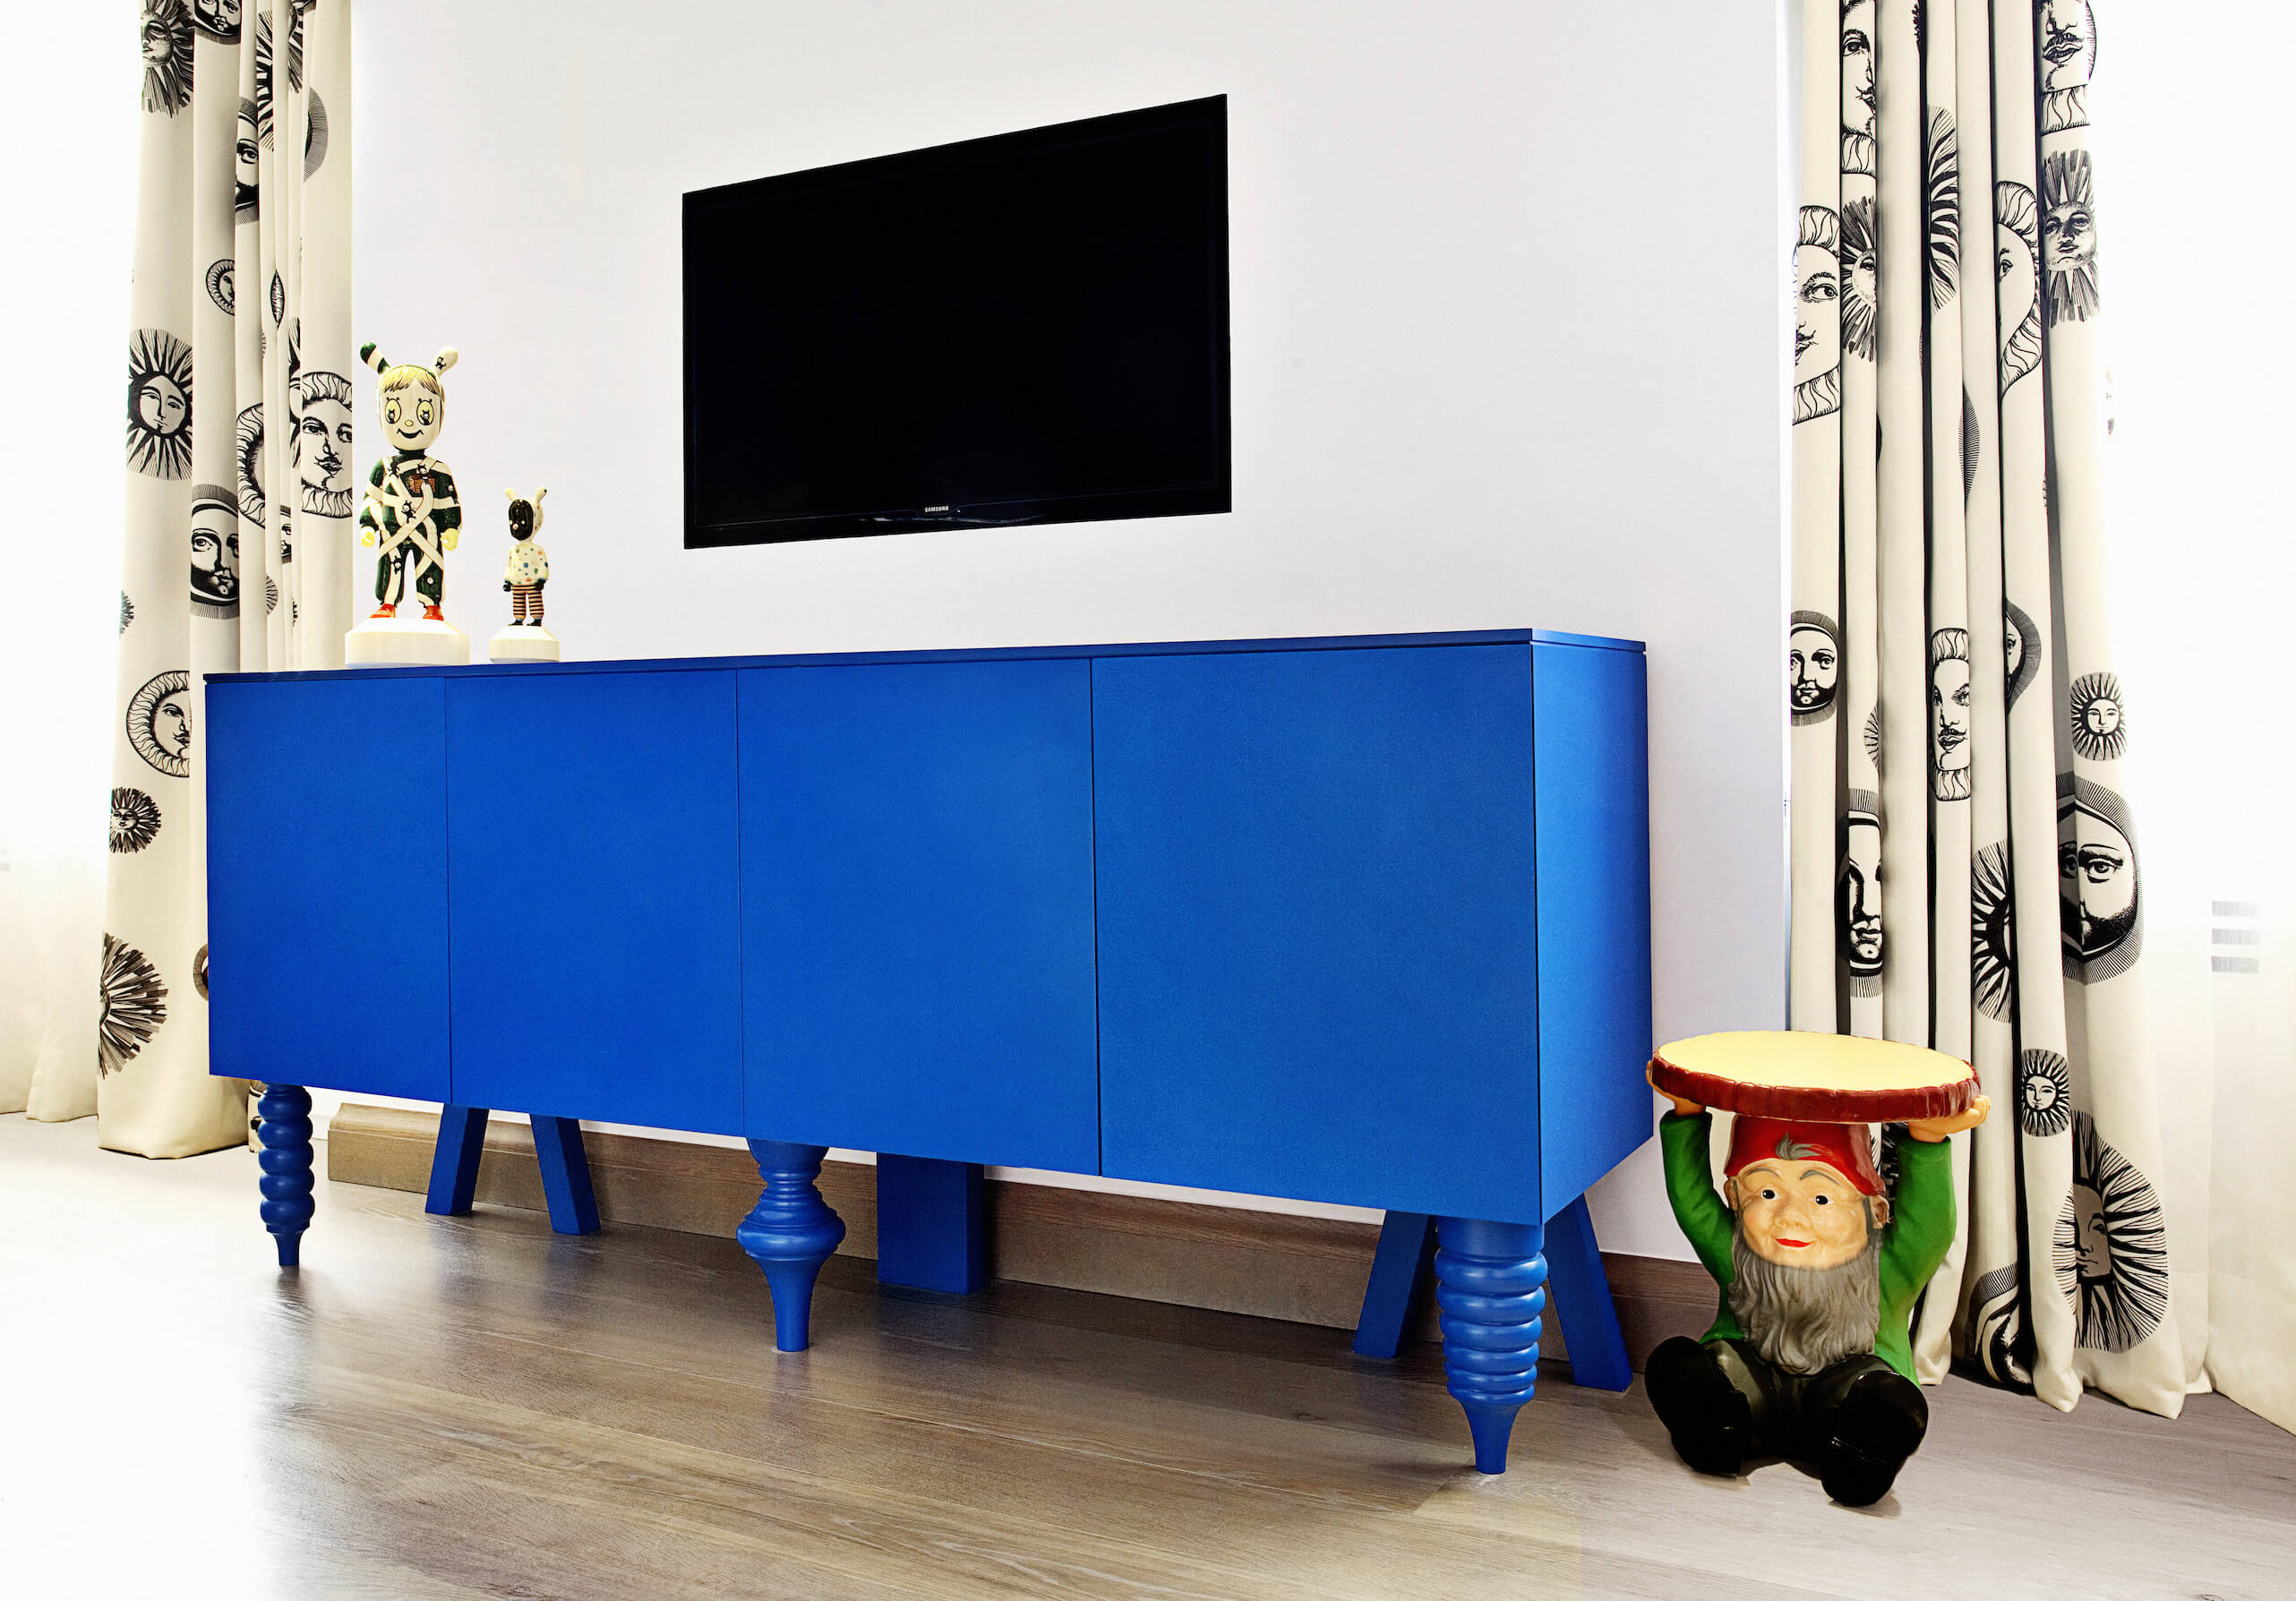 The bedroom holds another bold piece of furniture; this bright blue cabinetry standing between sun-patterned drapes, with a mismatched leg set. Wall mounted television hangs above the space, sporting another gnome table and pair of small statues.